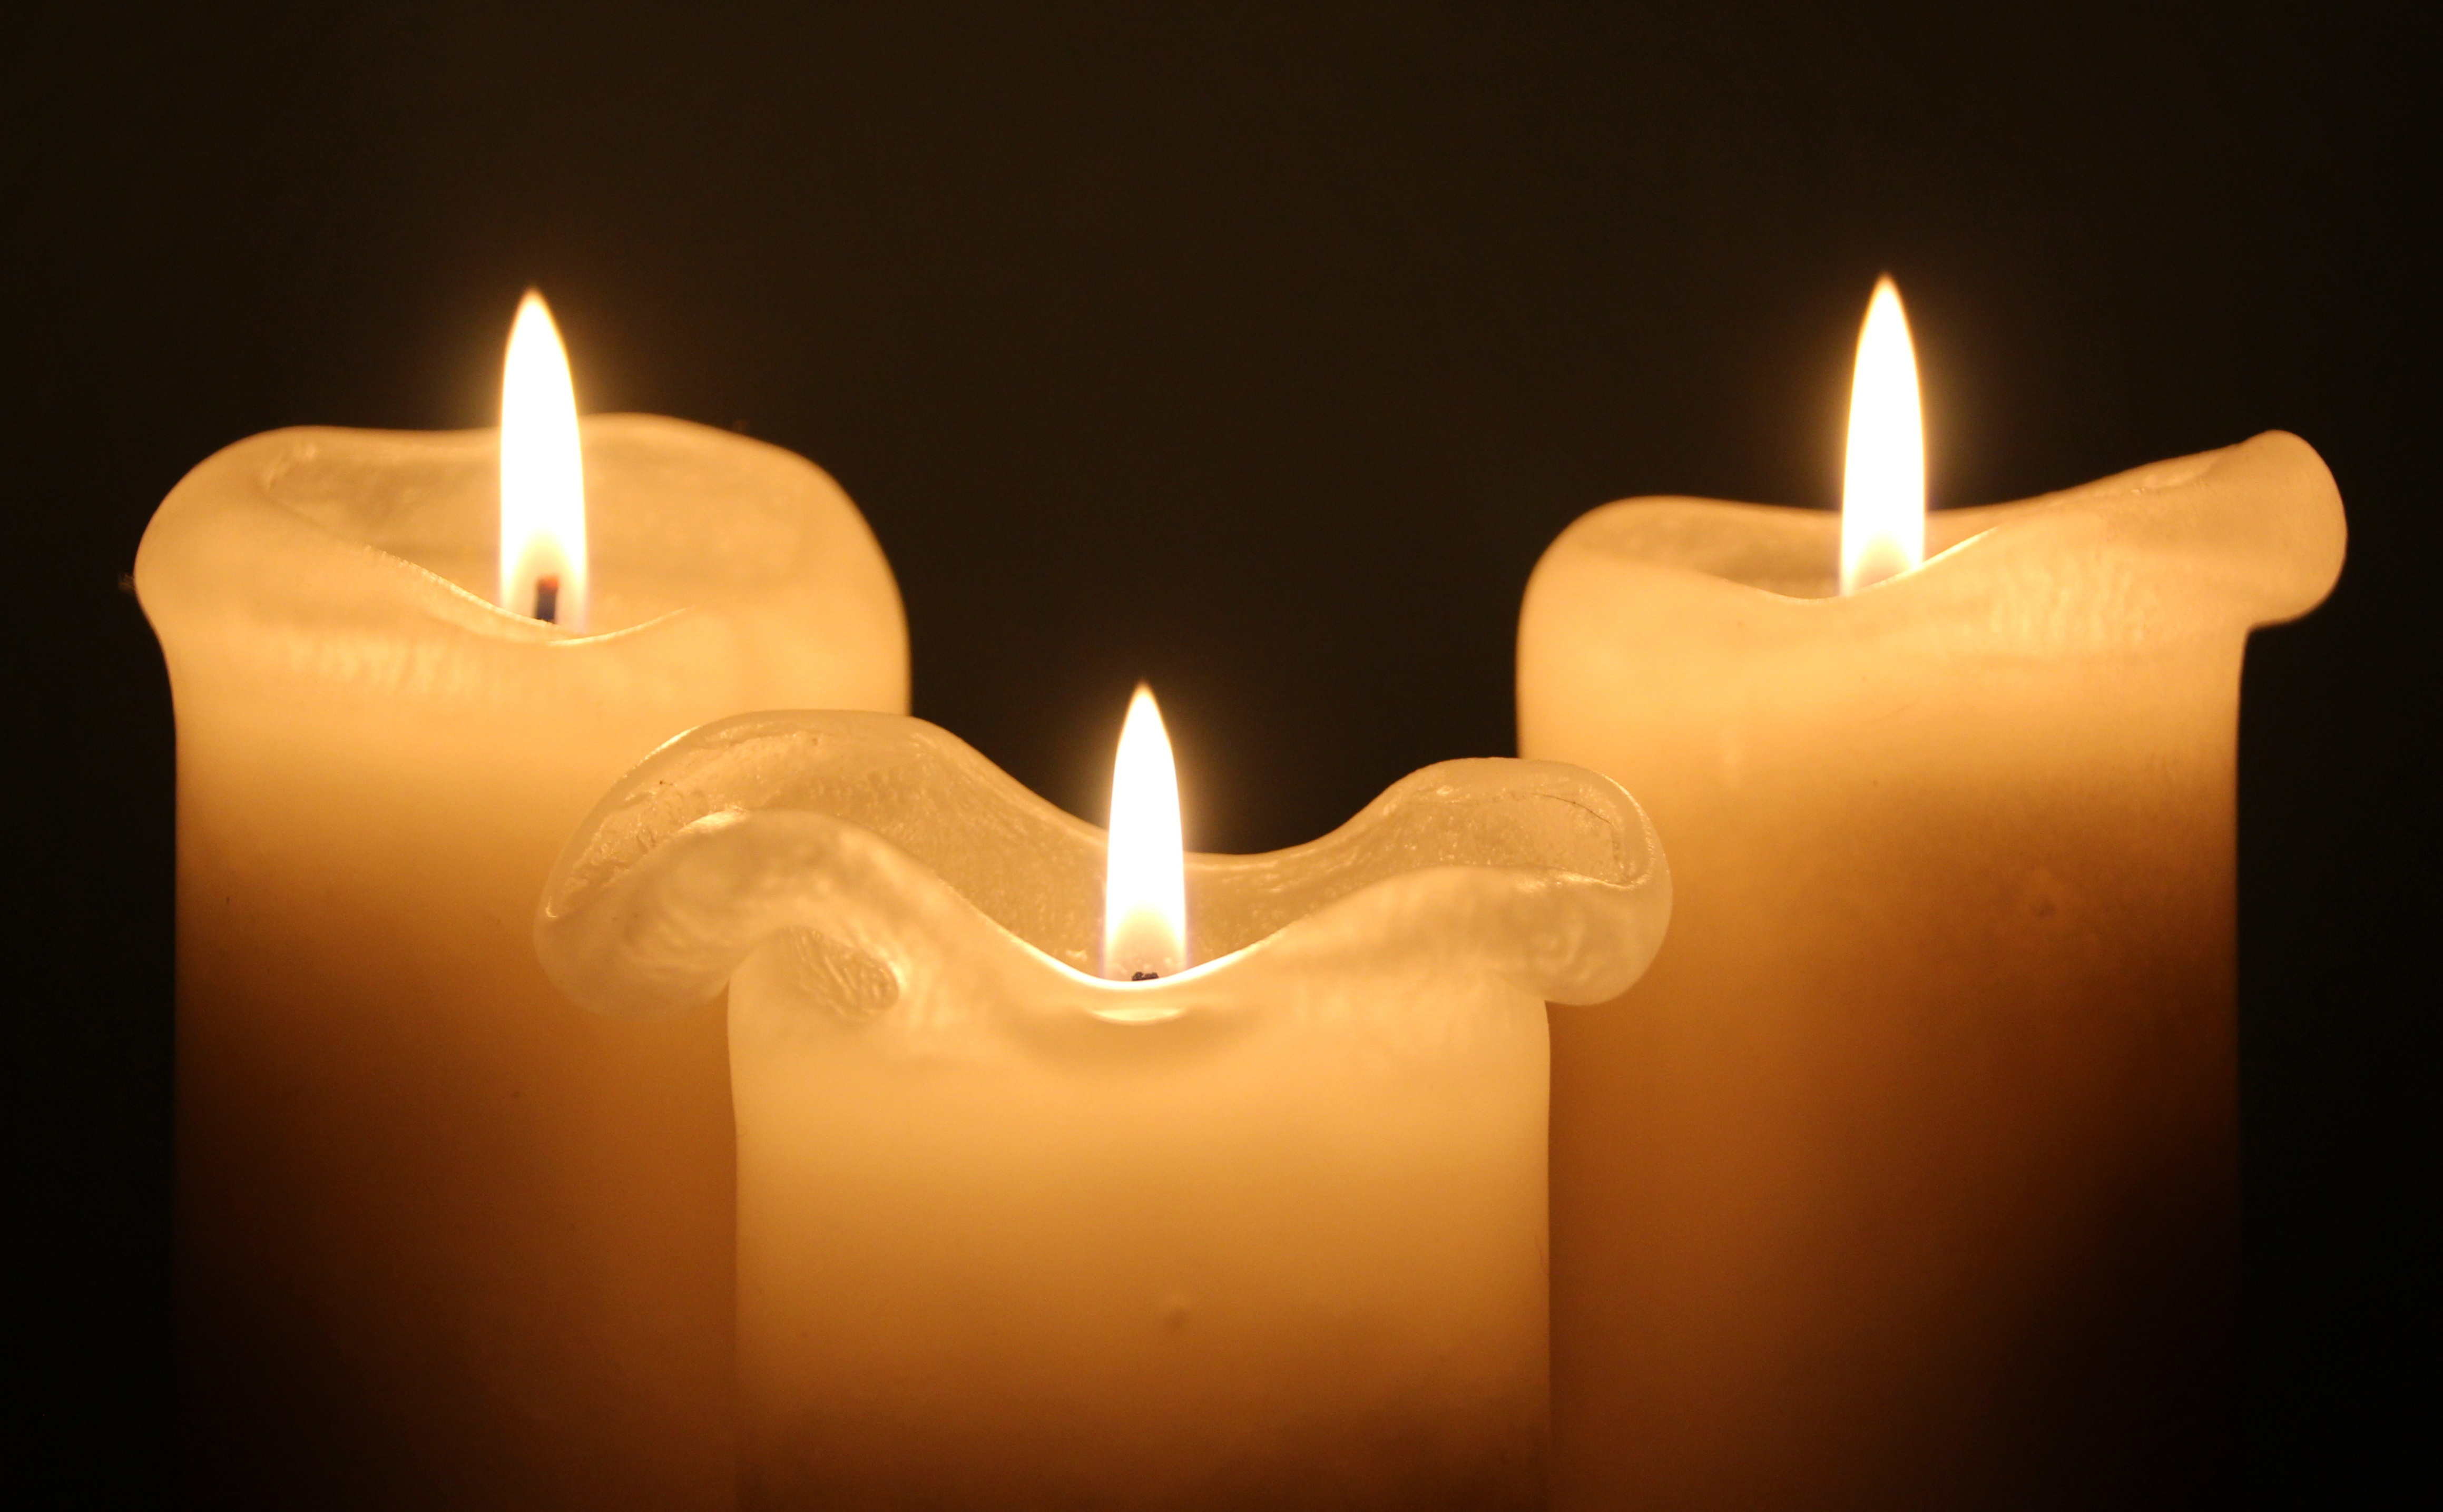 Burning Candle, Object, Wax, Fire, Candle, HQ Photo